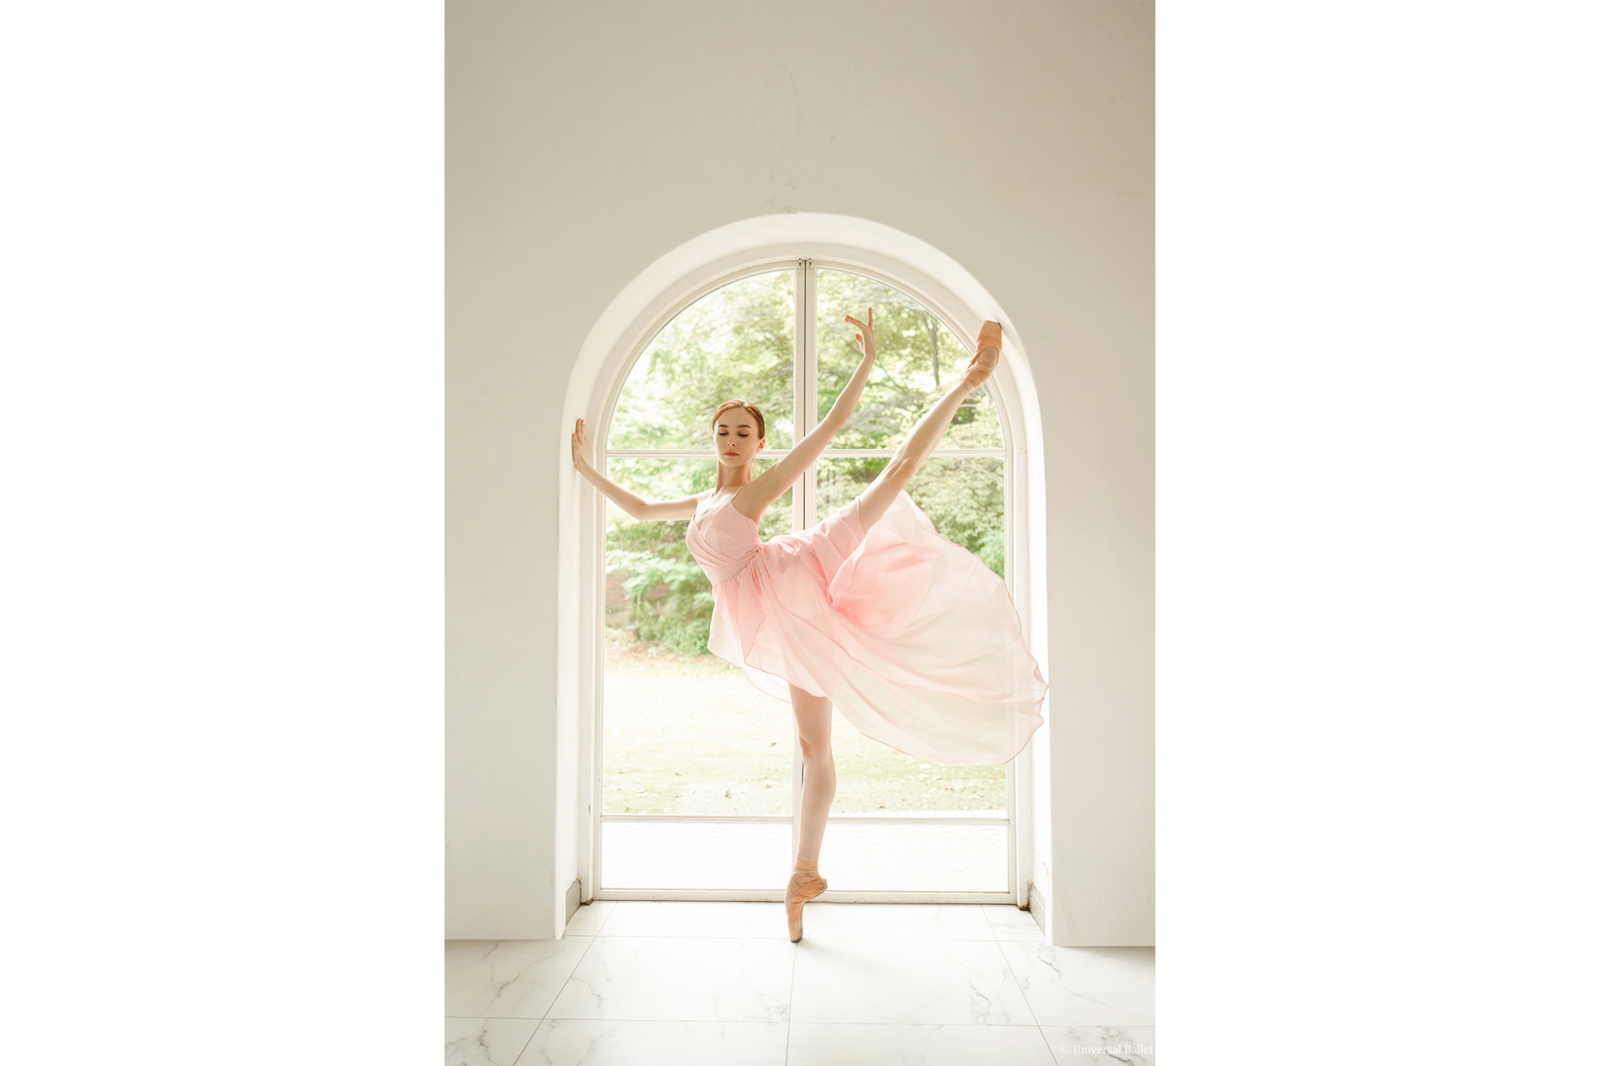 ballerine in pink dress against window alpha 7RIII